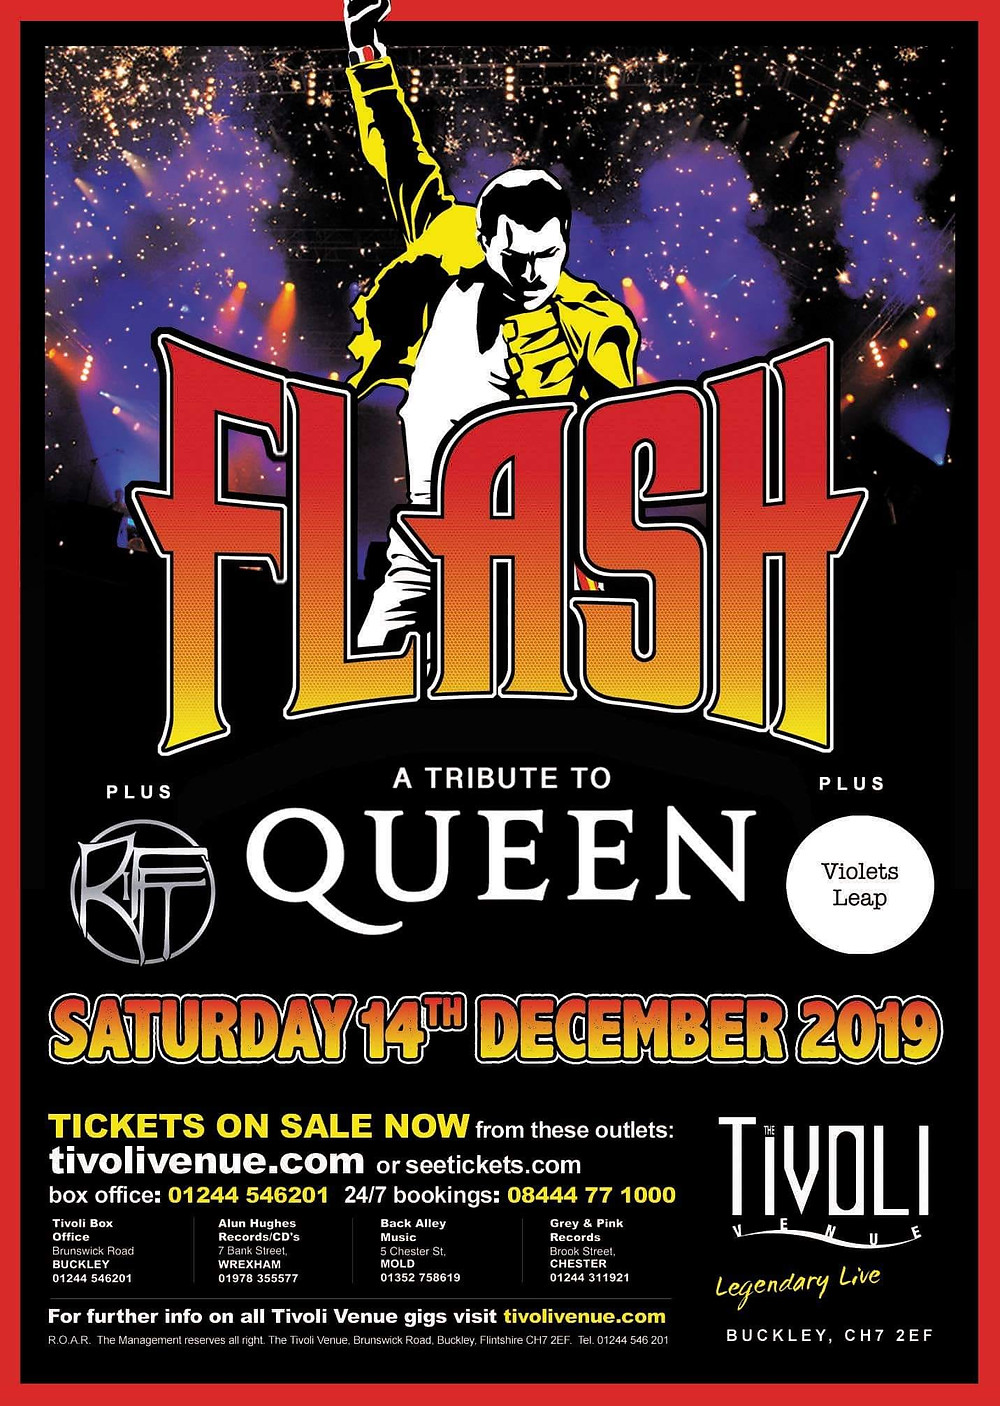 Tivoli Buckley Flintshire Flash Queen Tribute Live